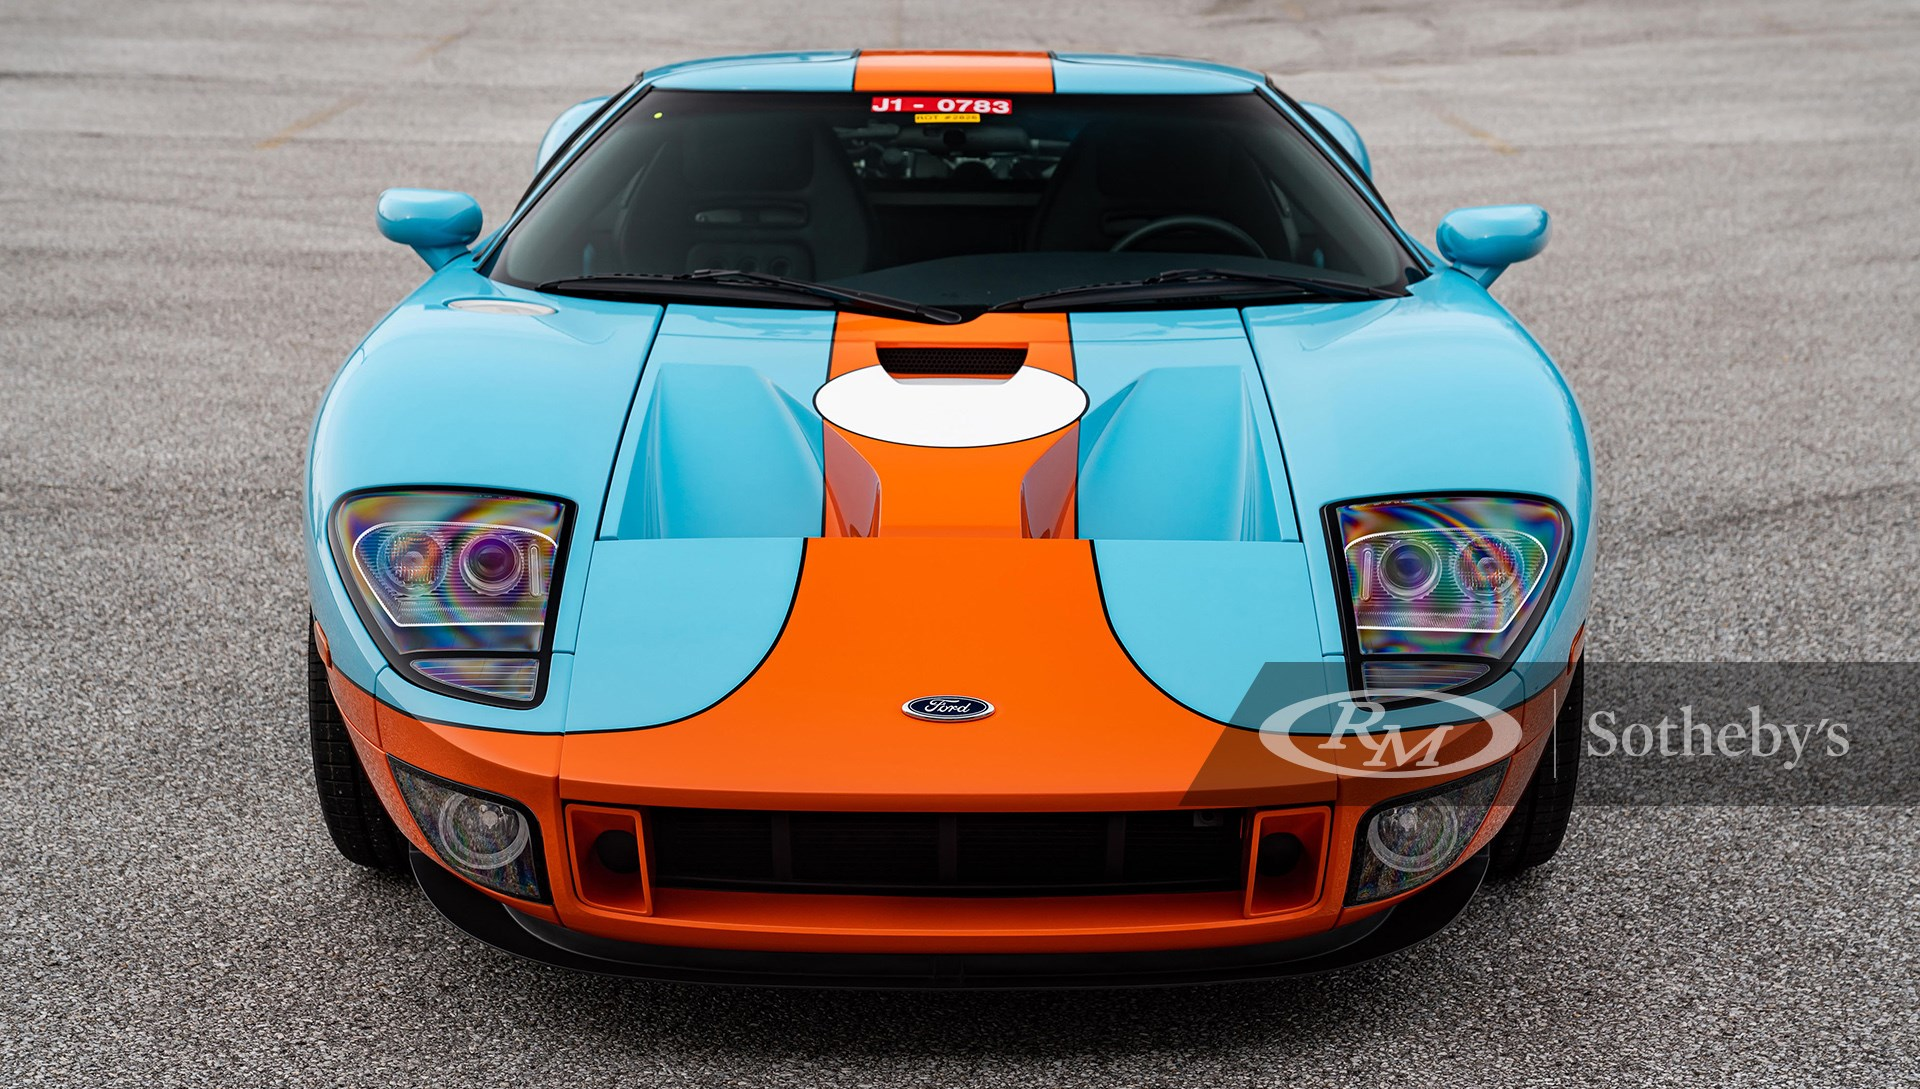 Heritage Paint Livery 2006 Ford GT Heritage available at RM Sotheby's Amelia Island Live Auction 2021